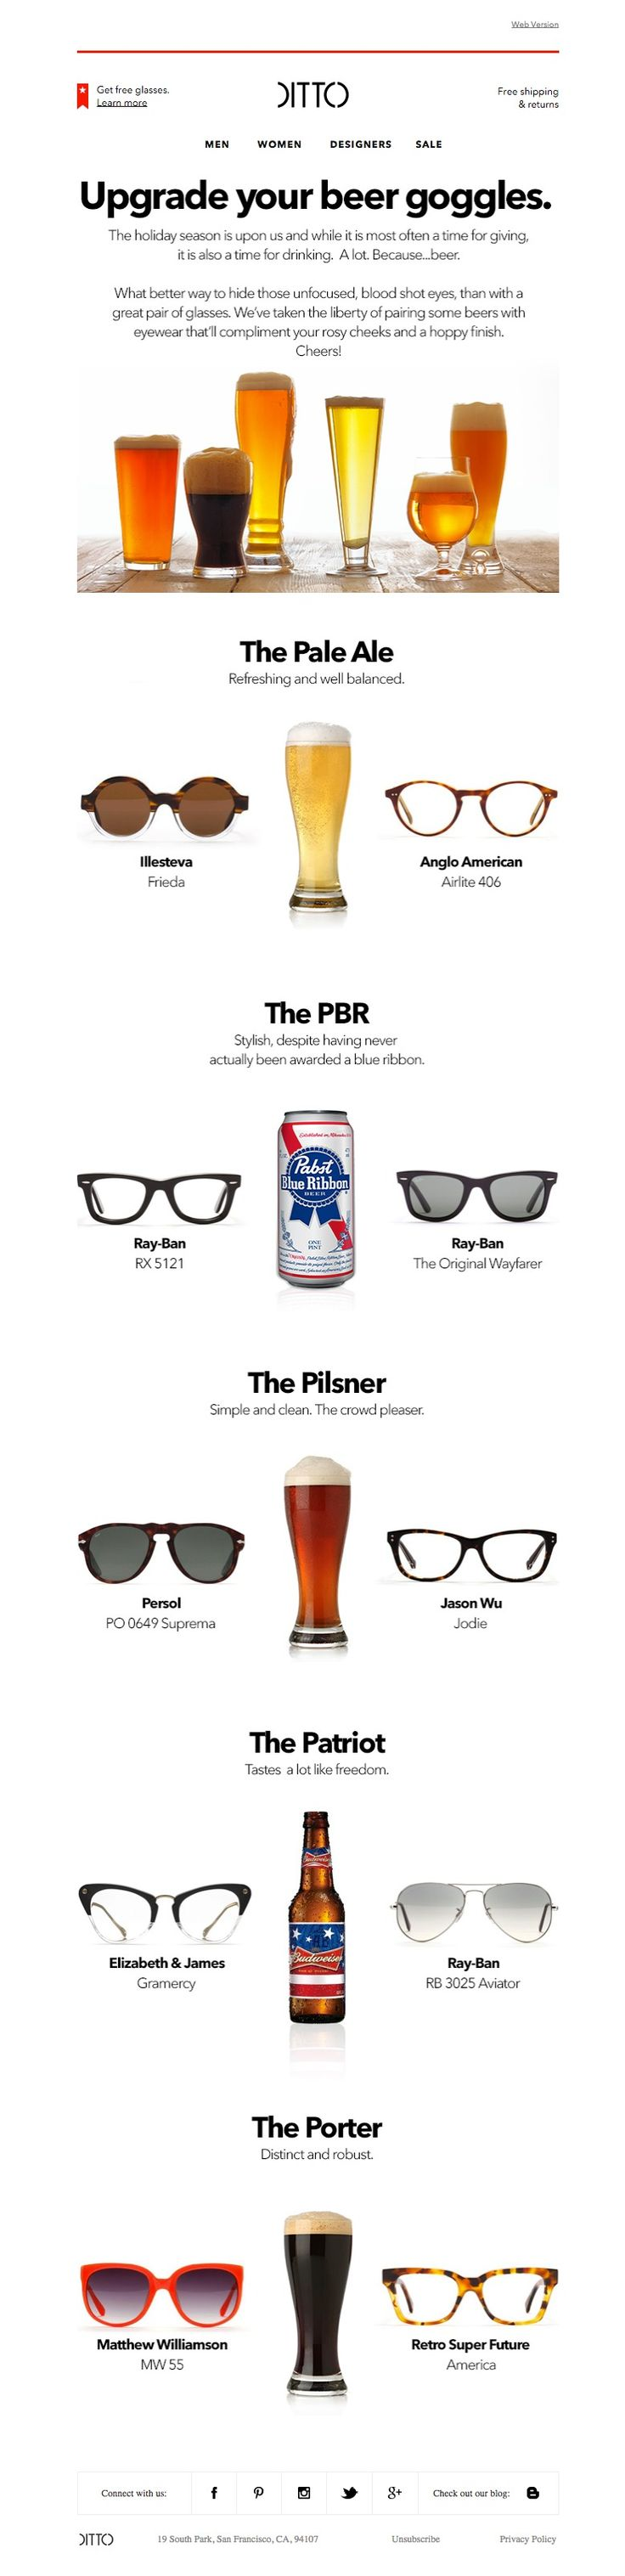 #newsletter Ditto 10.2014 Upgrade your beer goggles.